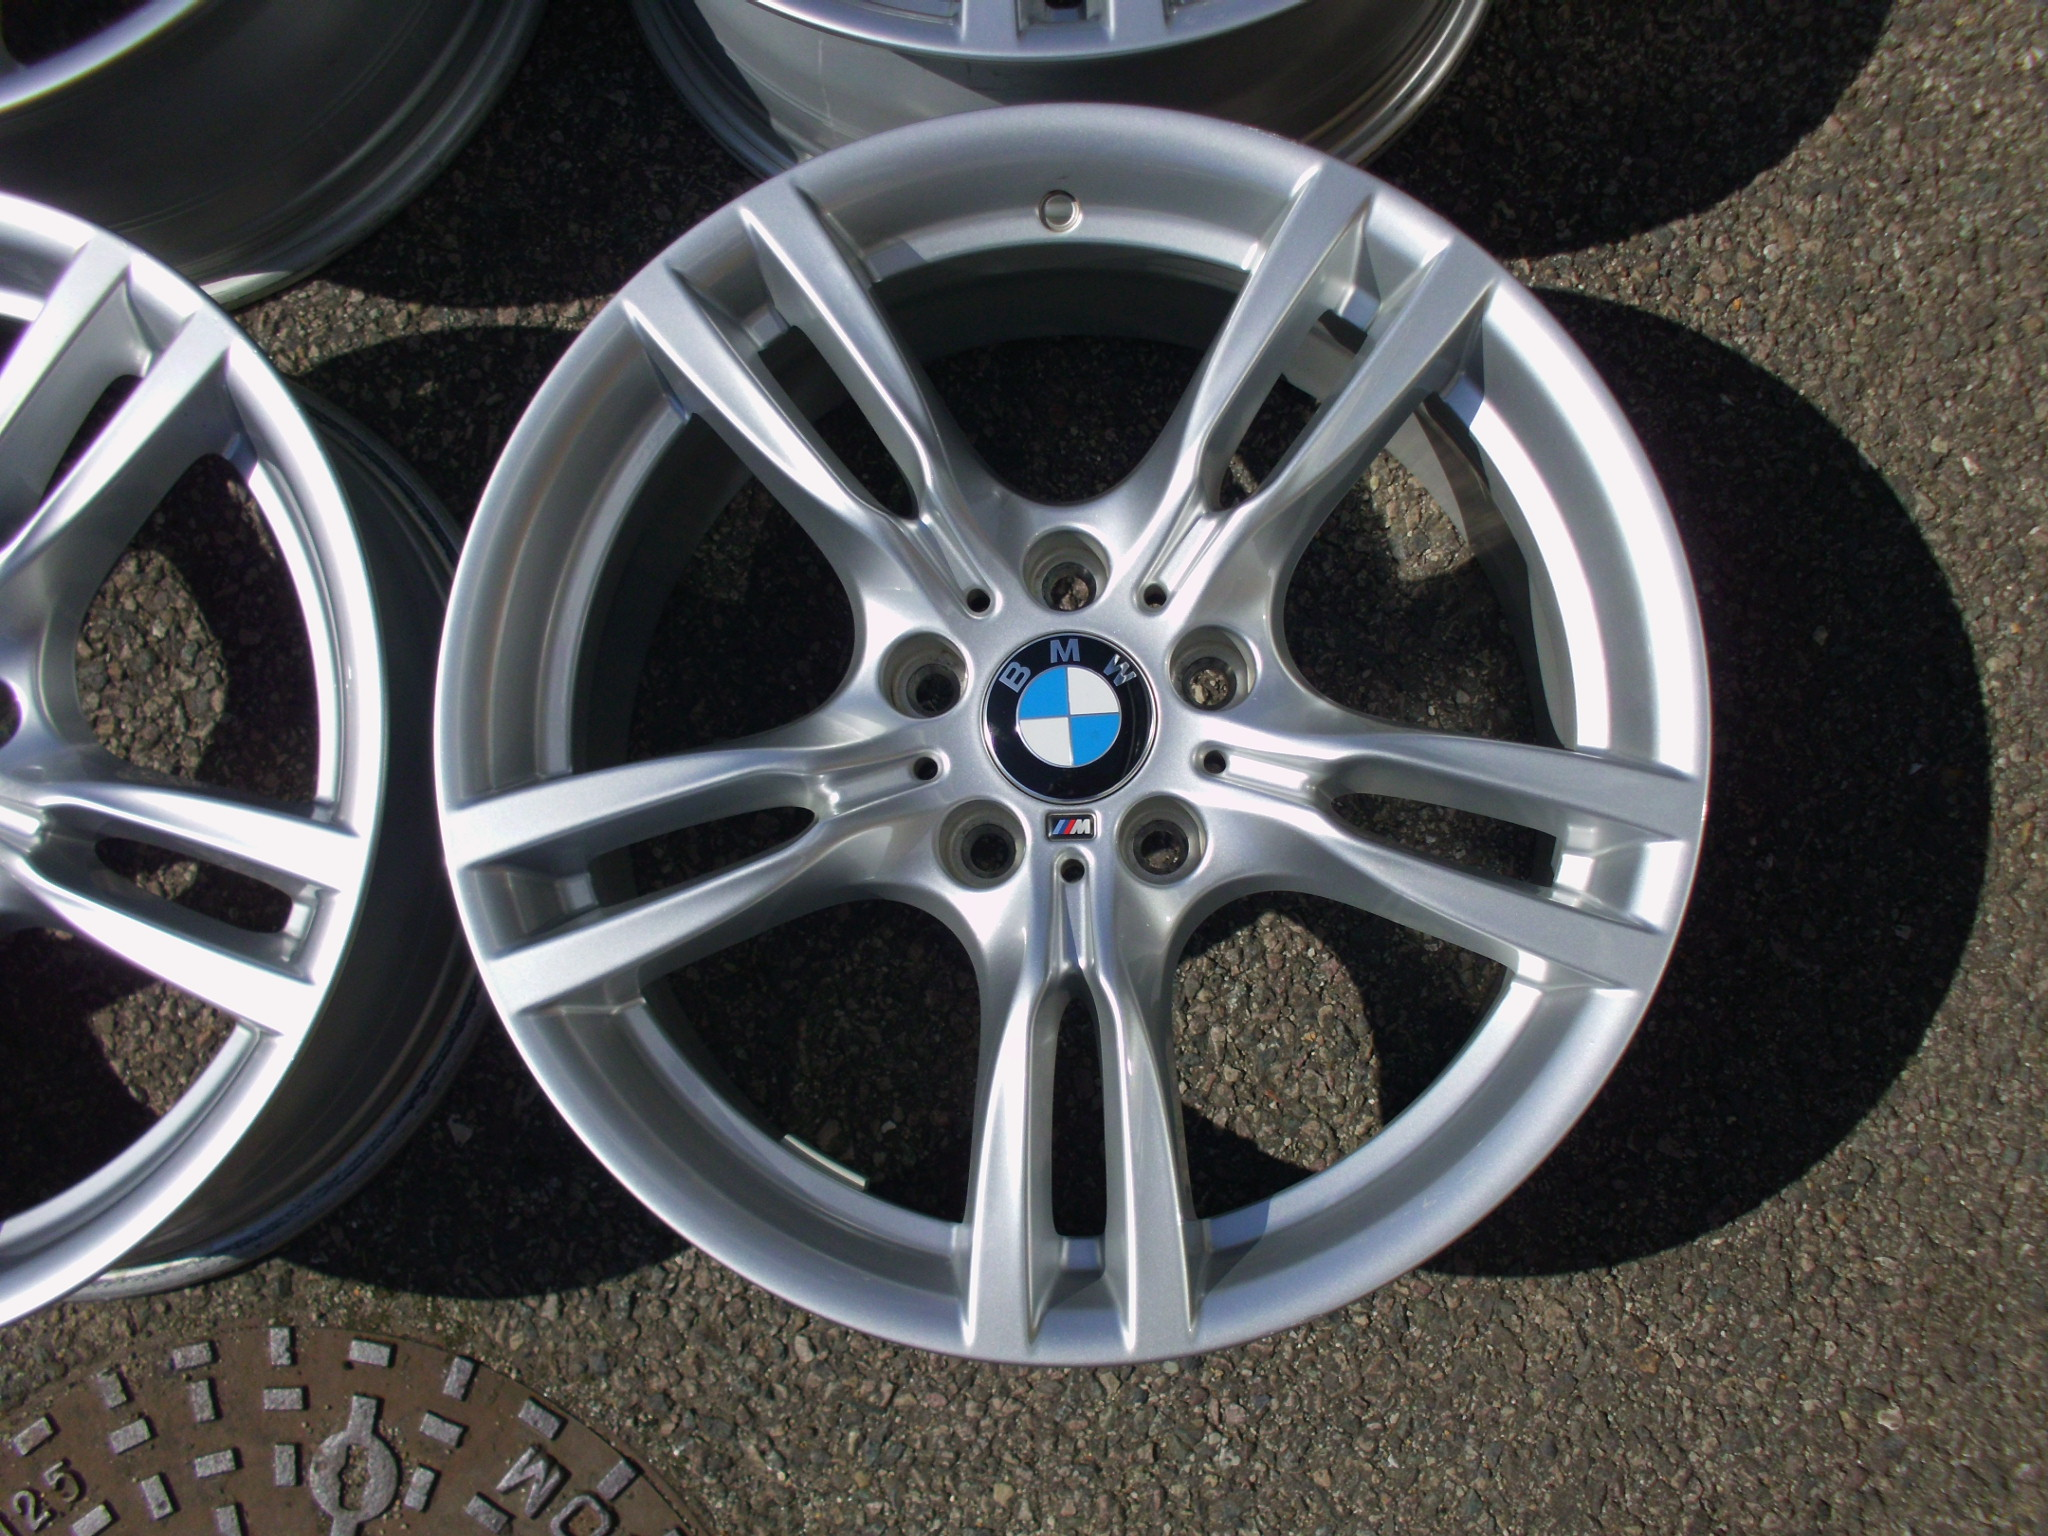 "USED 18"" GENUINE STYLE 400 M SPORT ALLOY WHEELS, WIDER REARS, VERY GOOD CONDITION"